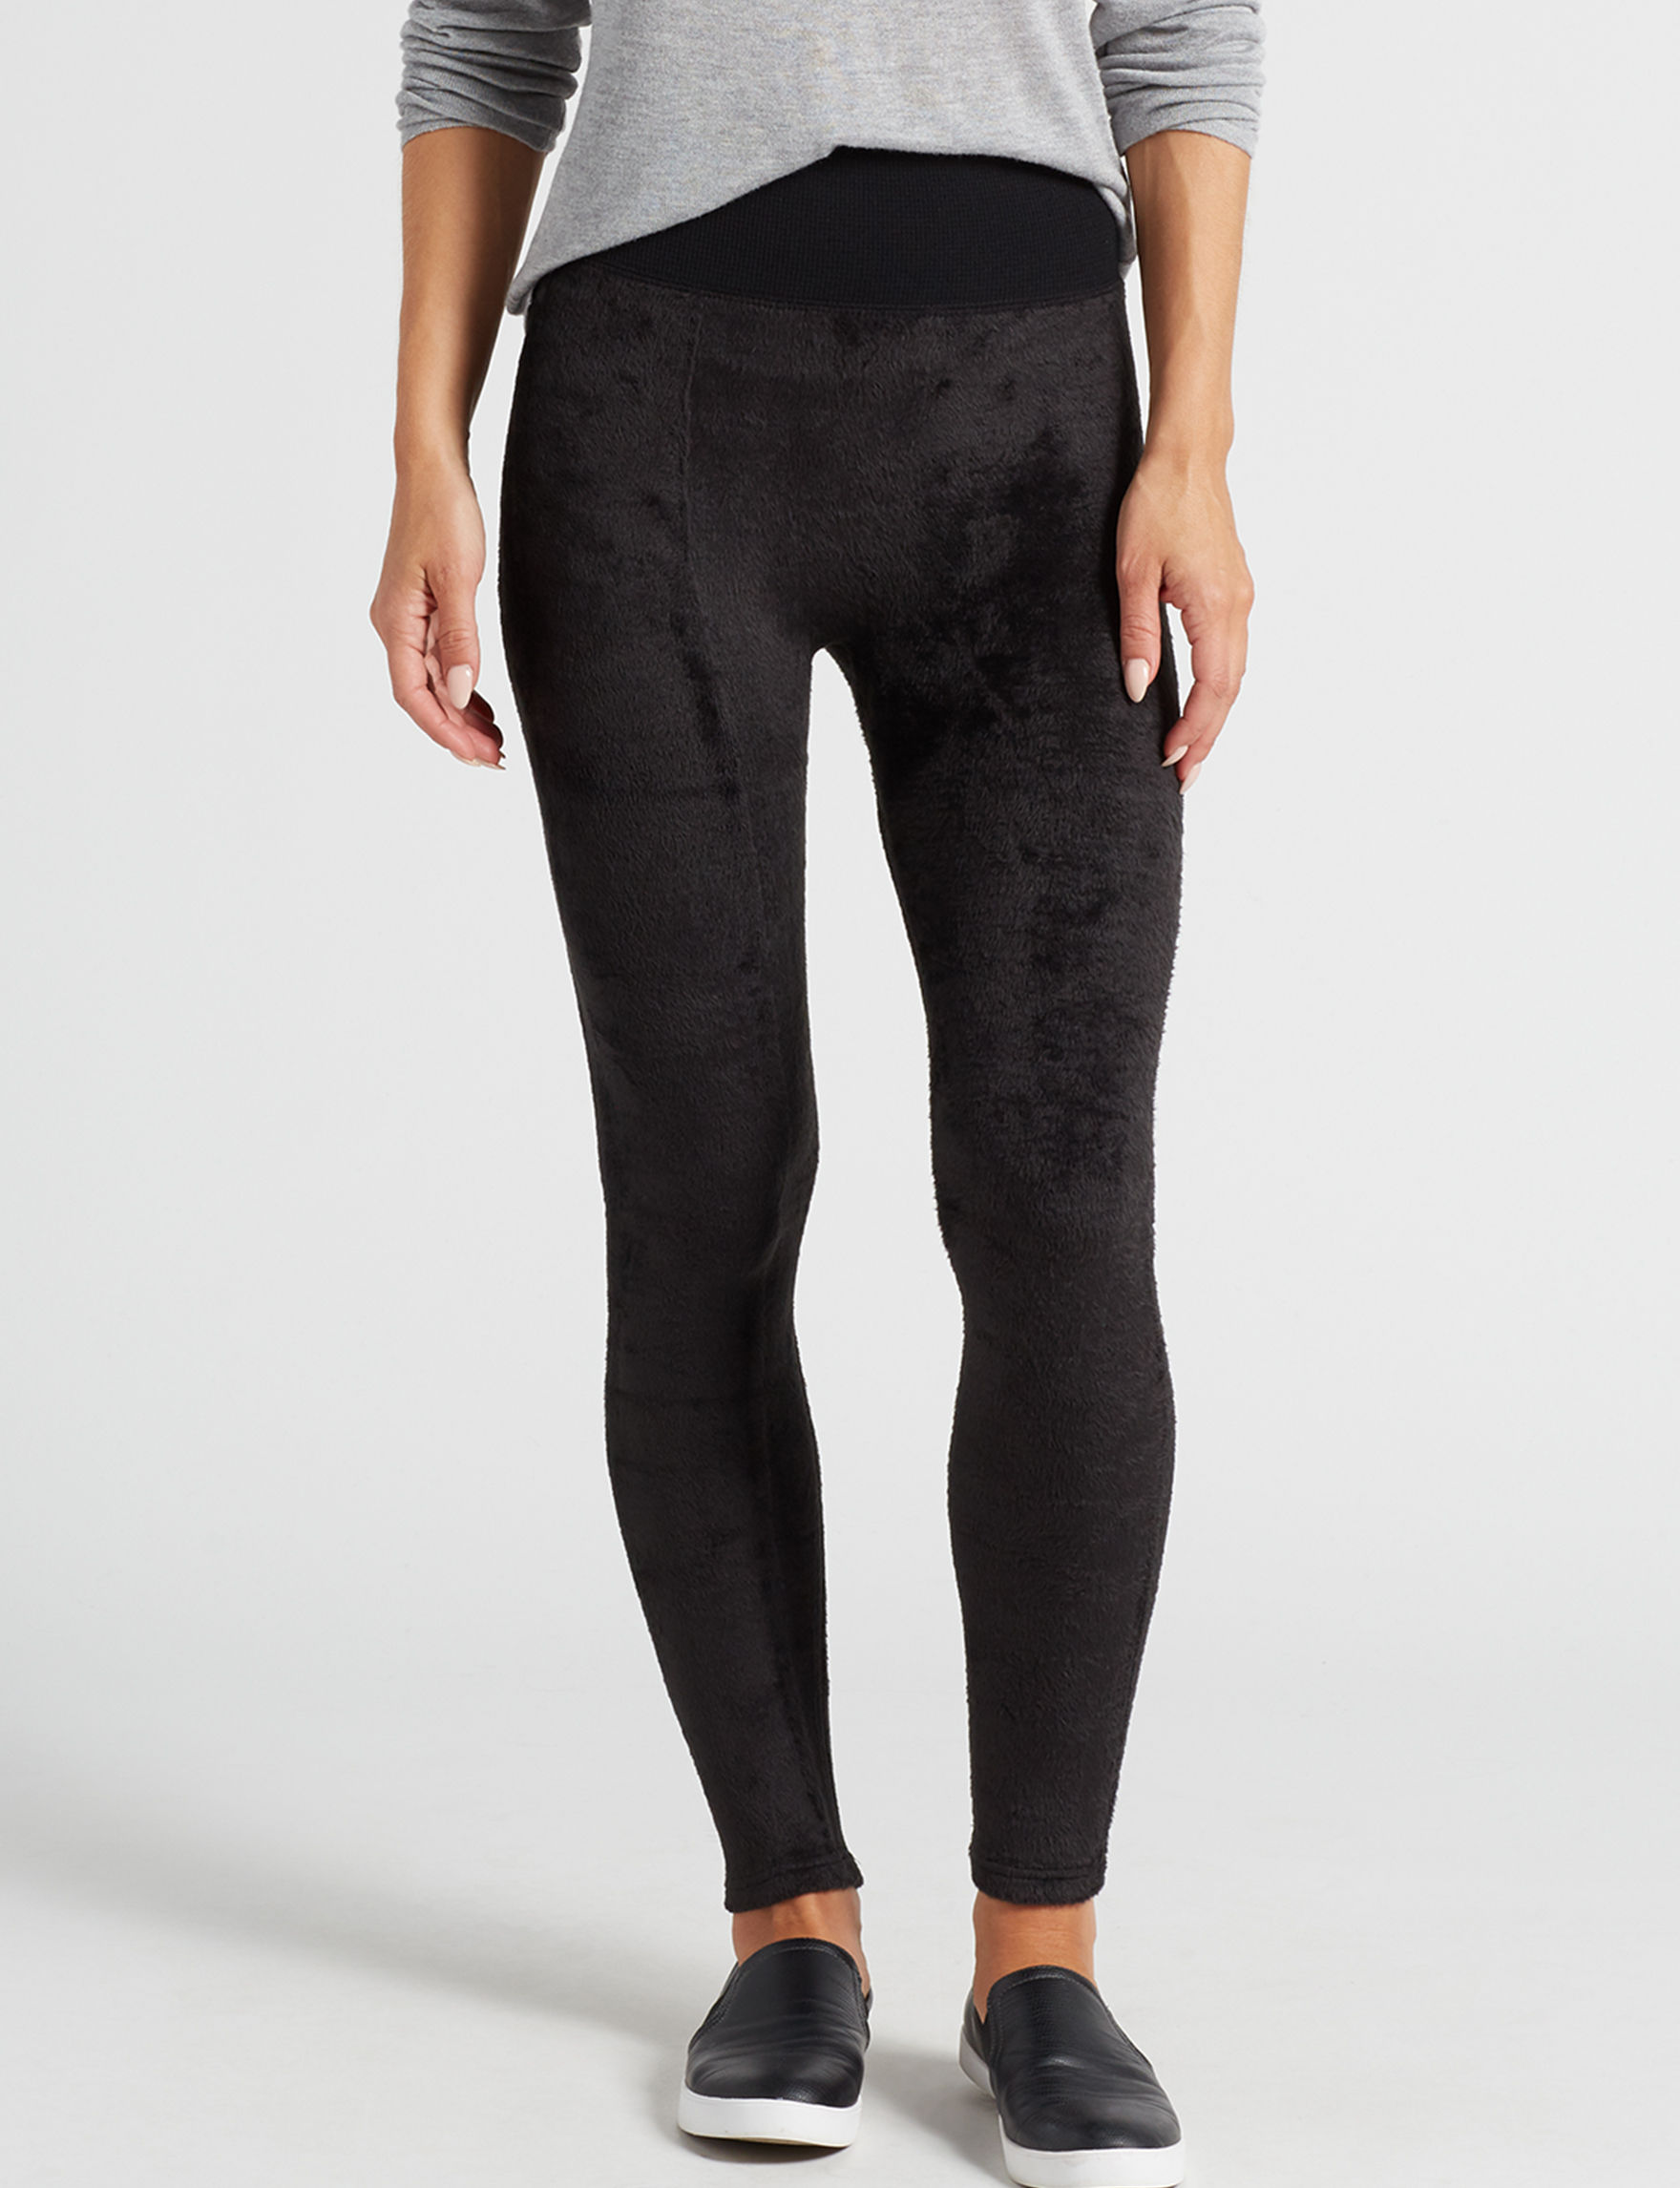 One 5 One Black Leggings